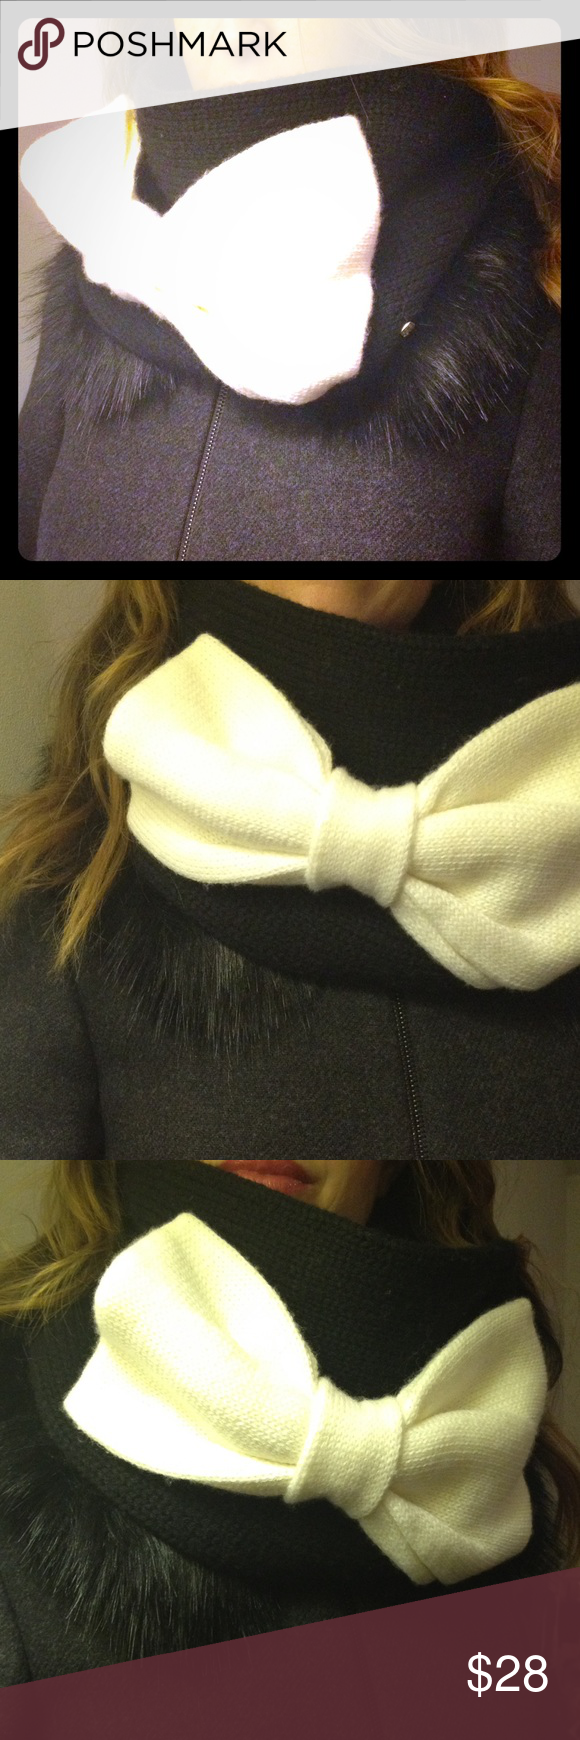 ♠️ kate spade ♠️ colorblock bow neckwarmer Kate Spade ♠️ Infinity type muffler scarf.  Cream bow on black scarf. Be kind to others. kate spade Accessories Scarves & Wraps